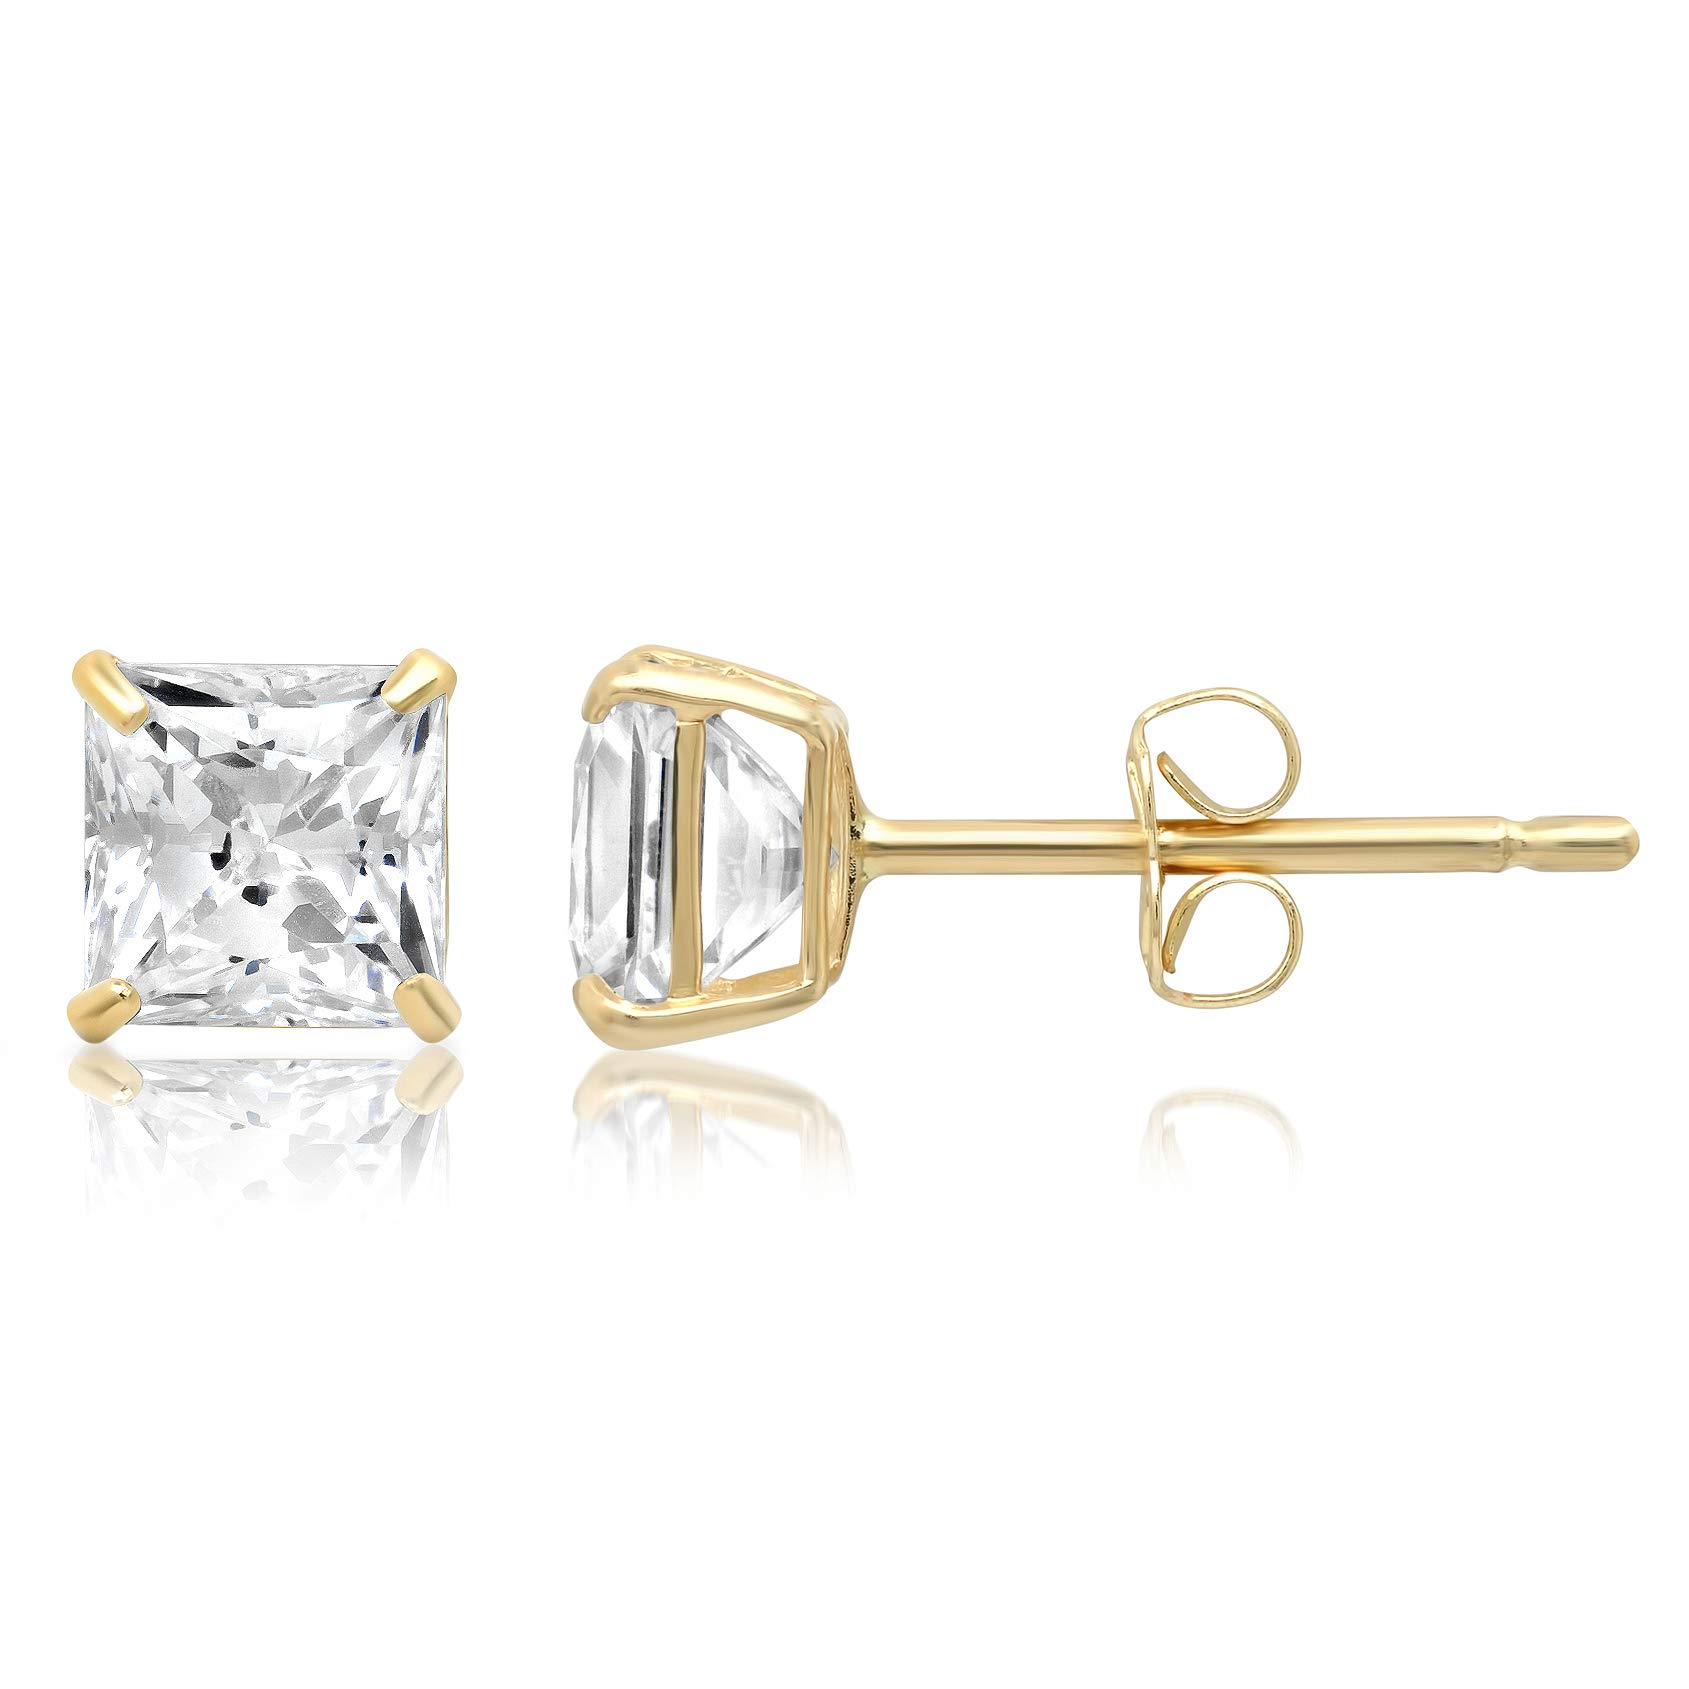 14k Solid Yellow Gold PRINCESS Stud Earrings with Genuine Swarovski Zirconia | 1.5 CT.TW. | With Gift Box by Parade of Jewels (Image #2)